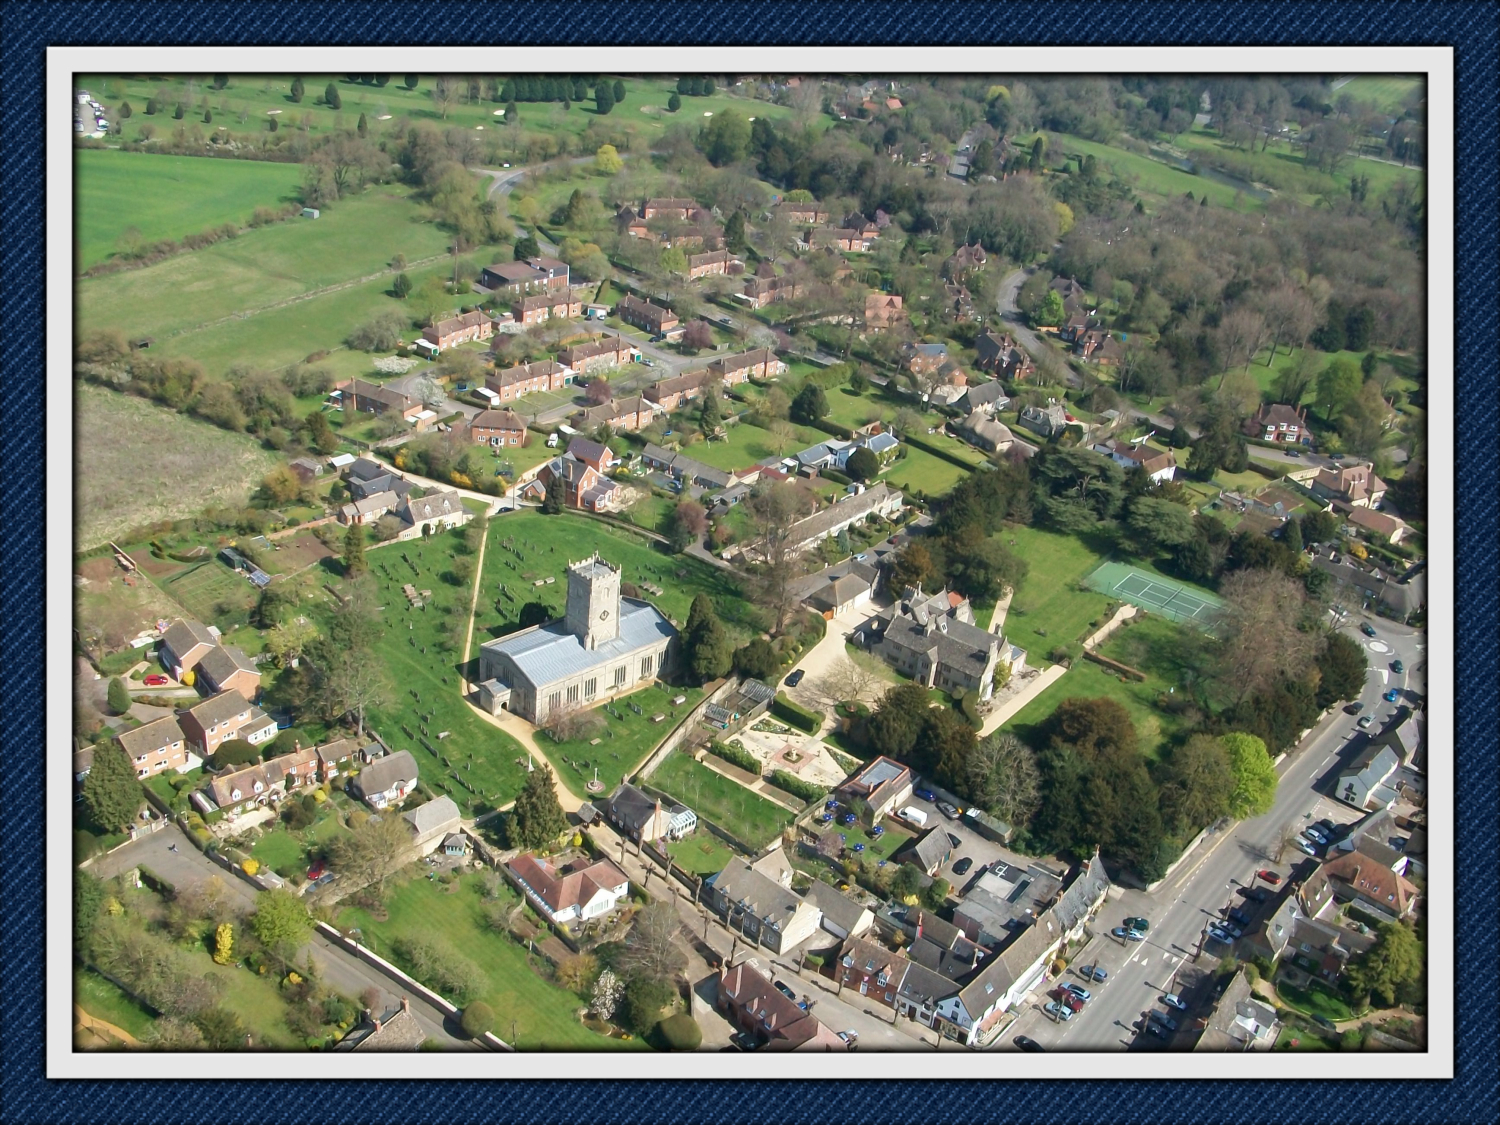 The centre of Shrivenham Village from the air